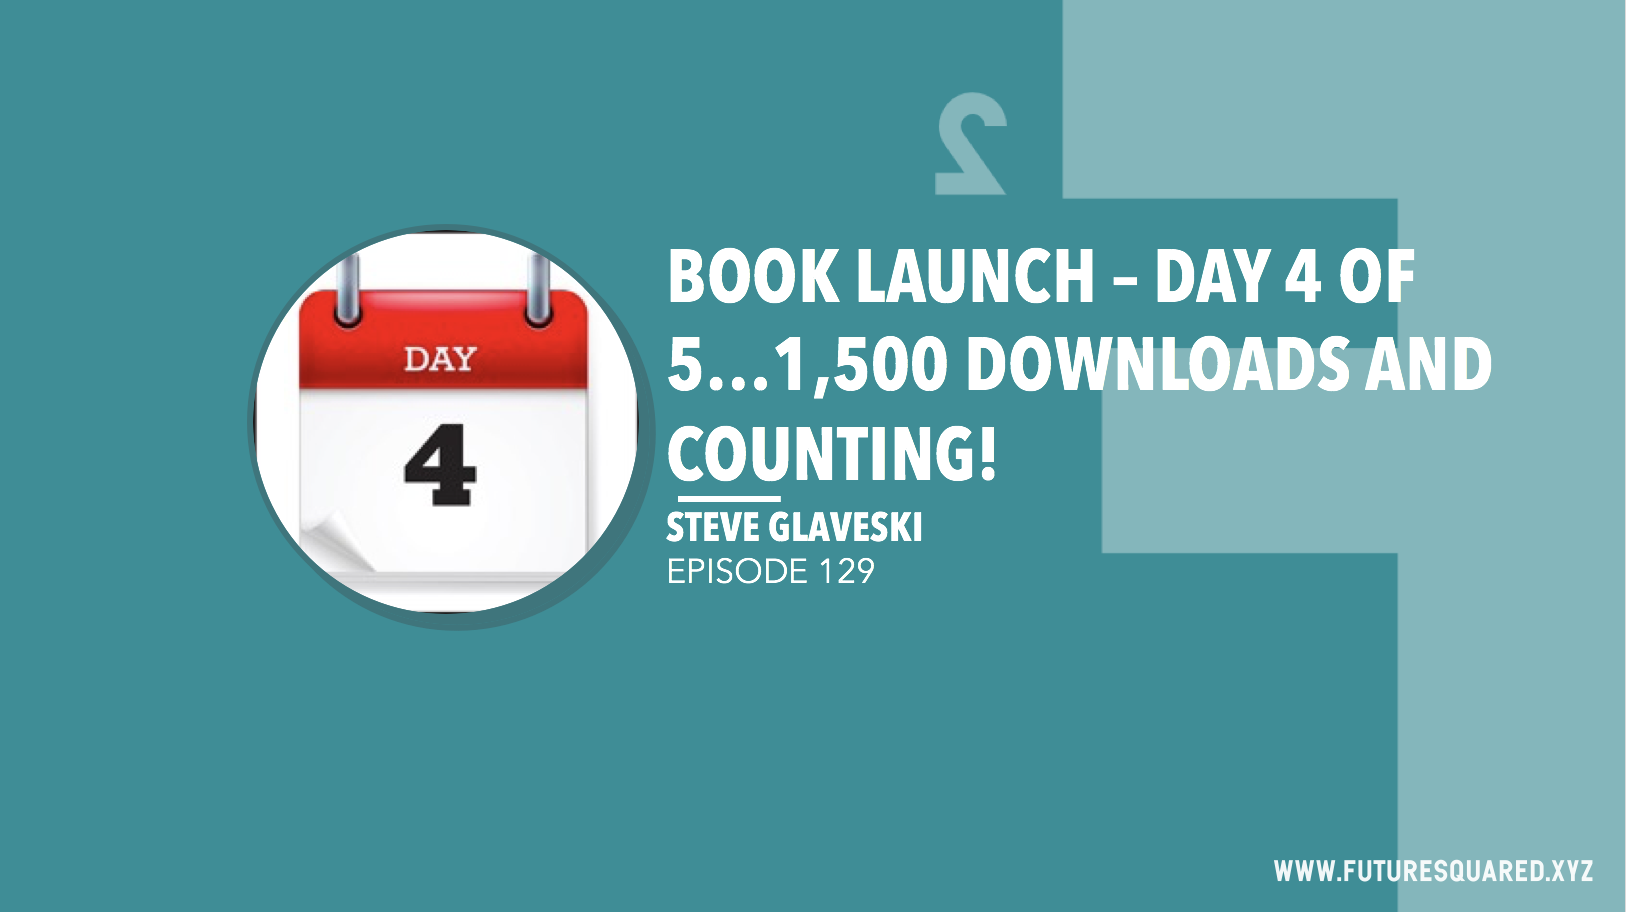 Future Squared Episode #129: Book Launch Day 4 of 5 - 1,500 downloads and counting!